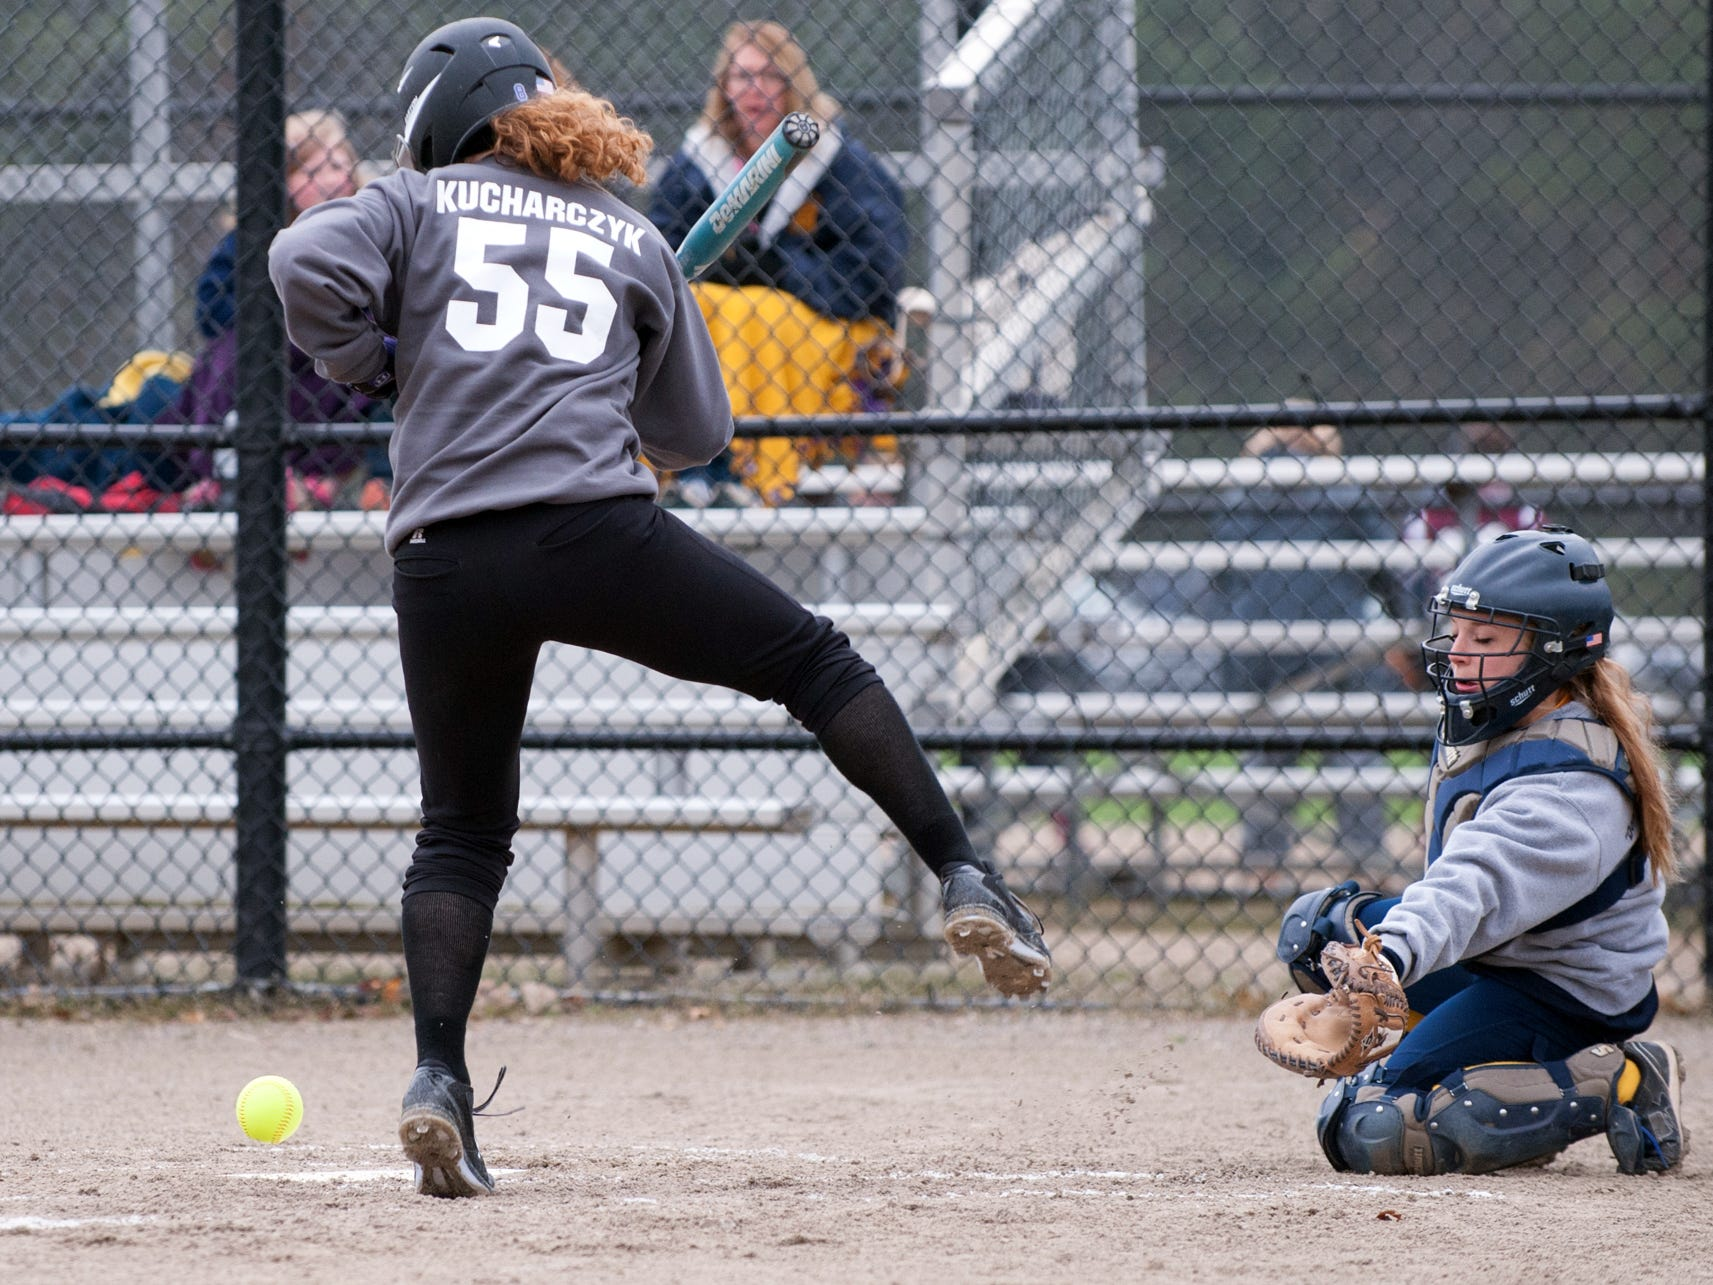 The ball bounces off Lakeview batter Kim Kucharczyk in the first game of the Gull Lake Softball Invitational on Saturday.